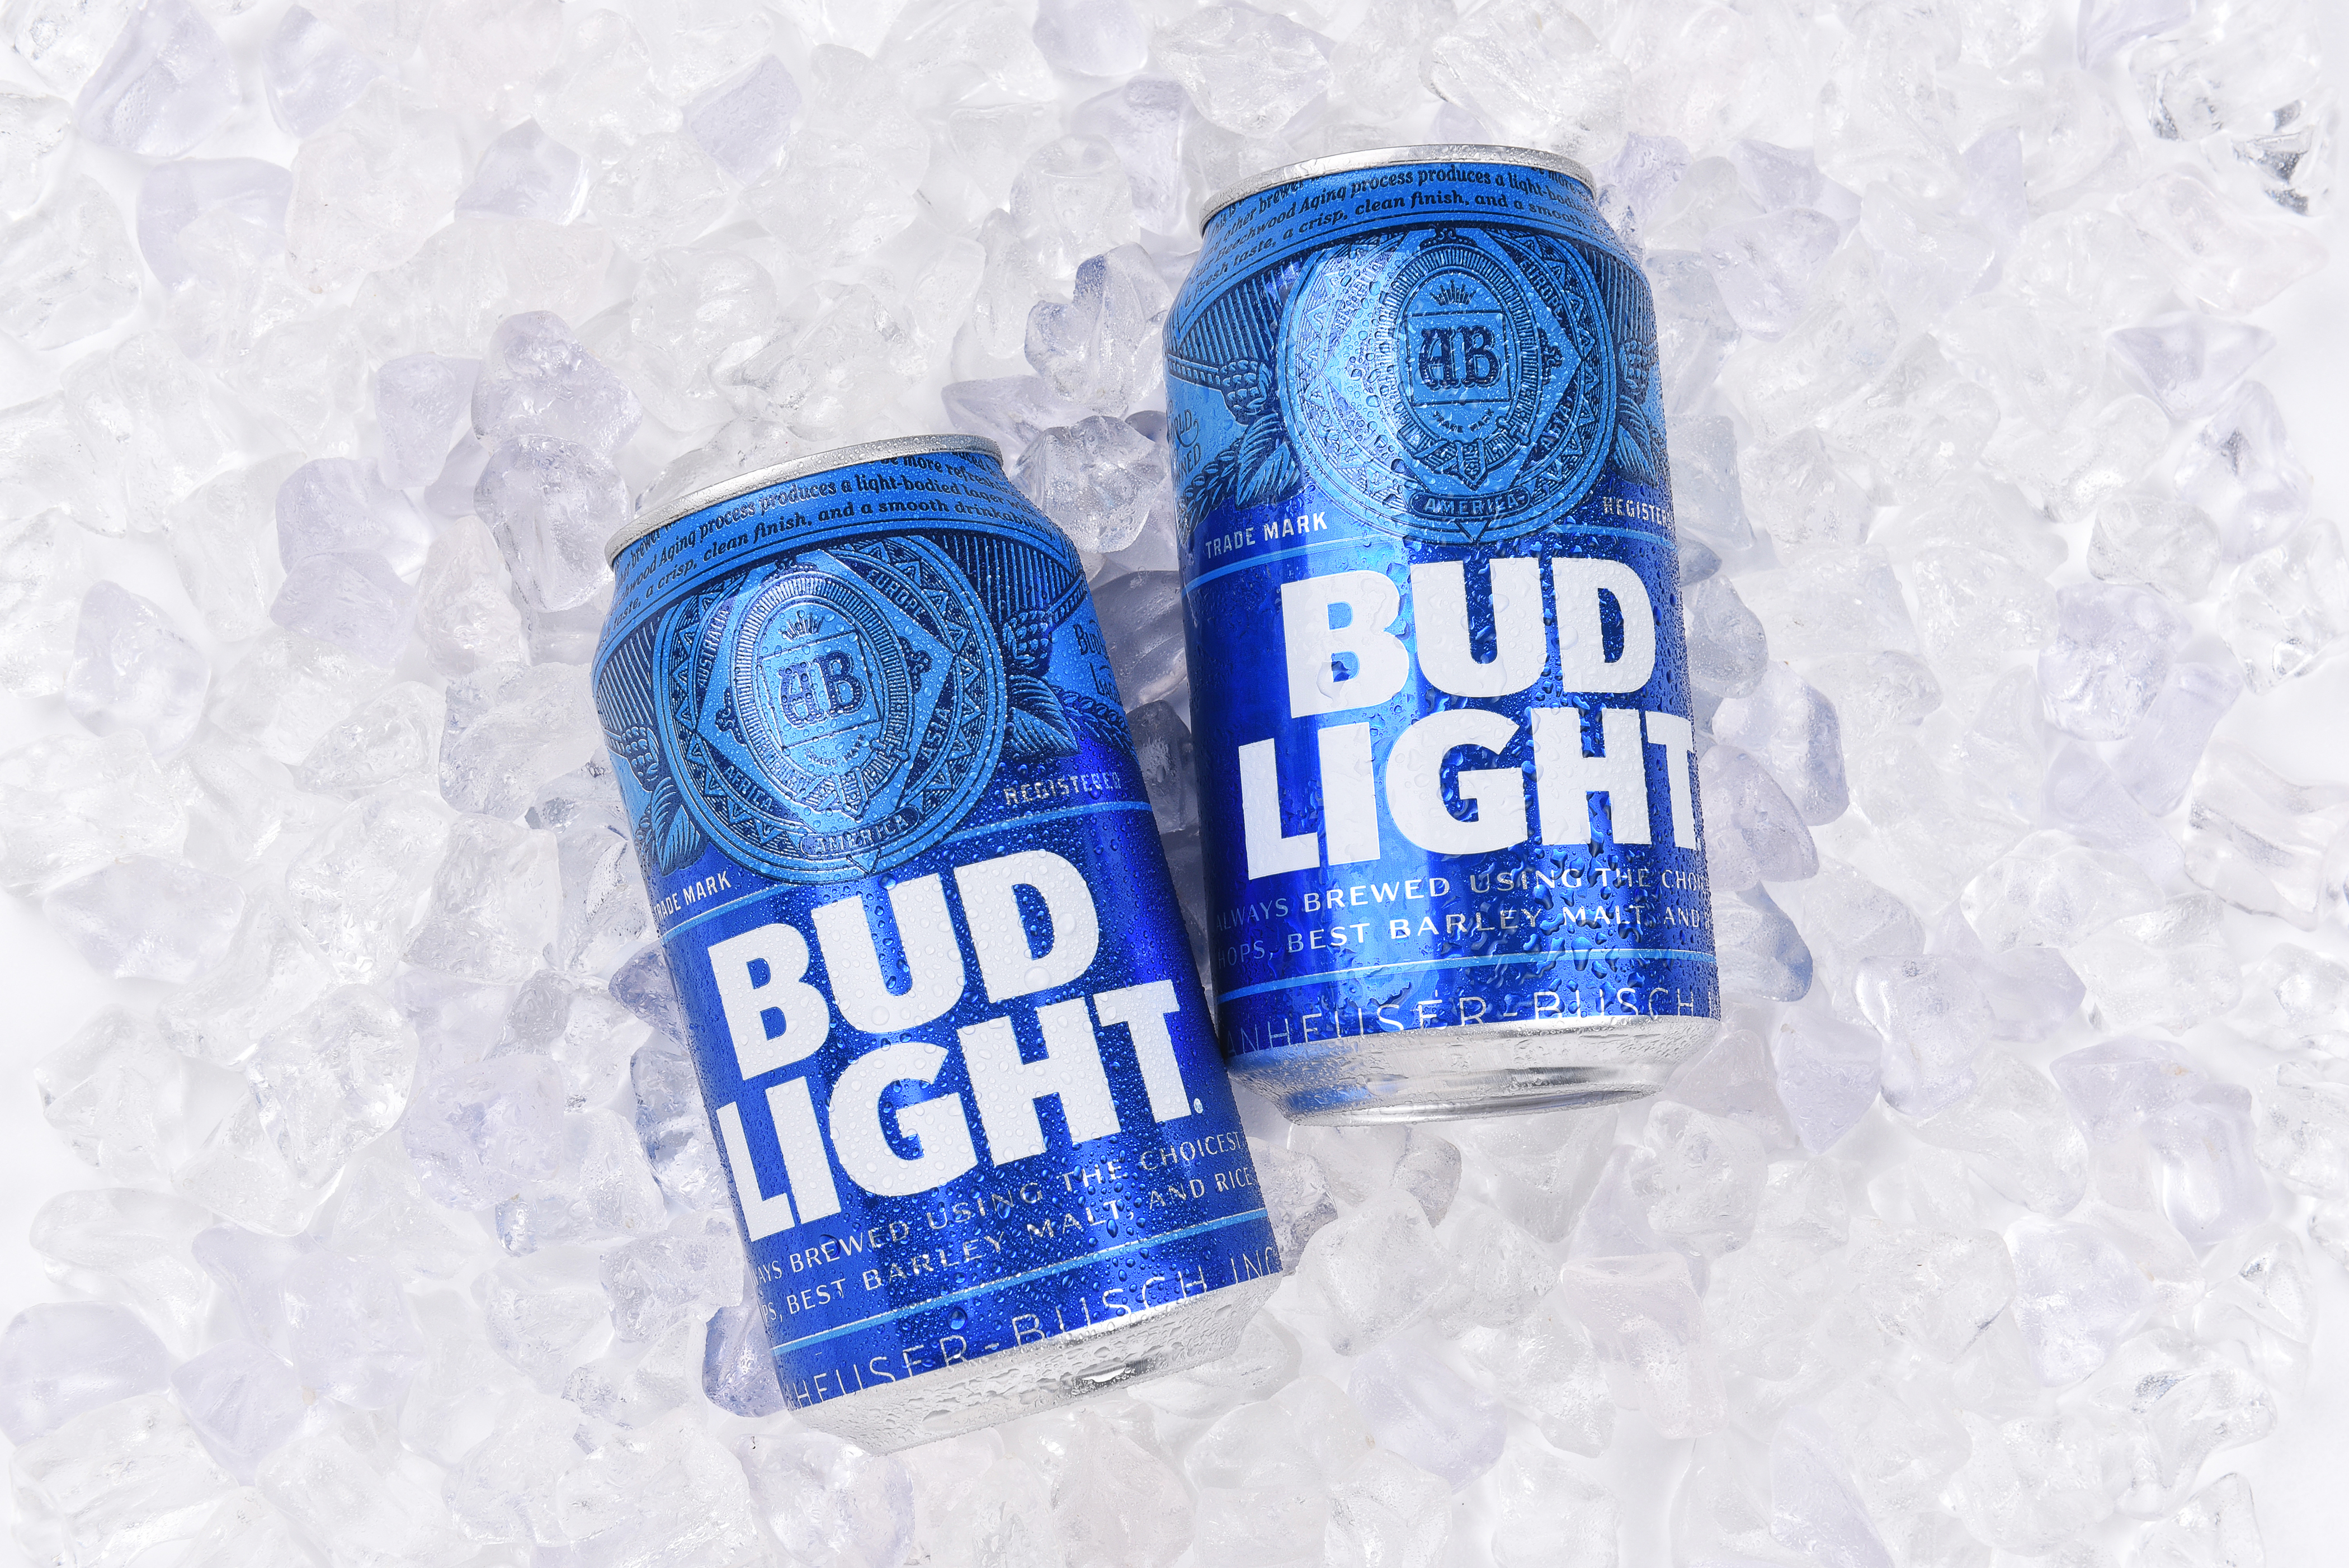 Two cans of bud light on a bed of ice